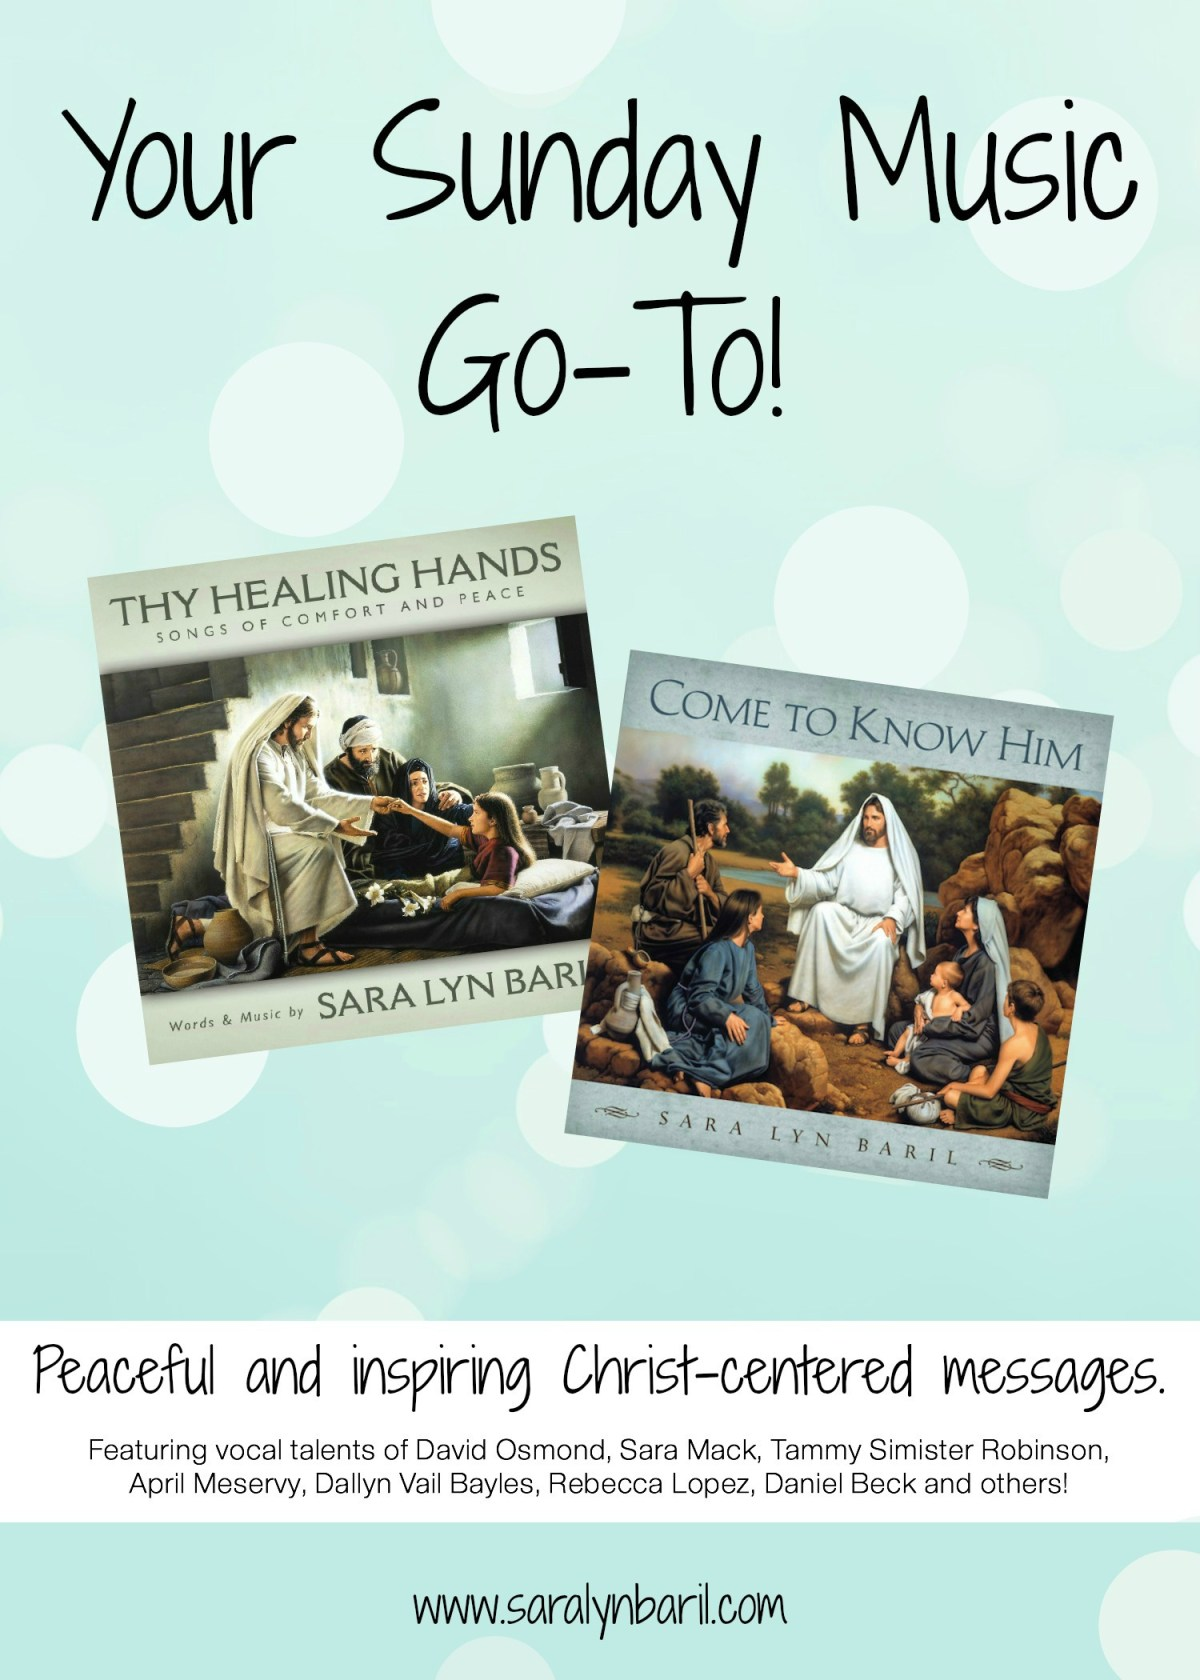 Book of Mormon Reading Challenge 2016 – To Lift and Inspire